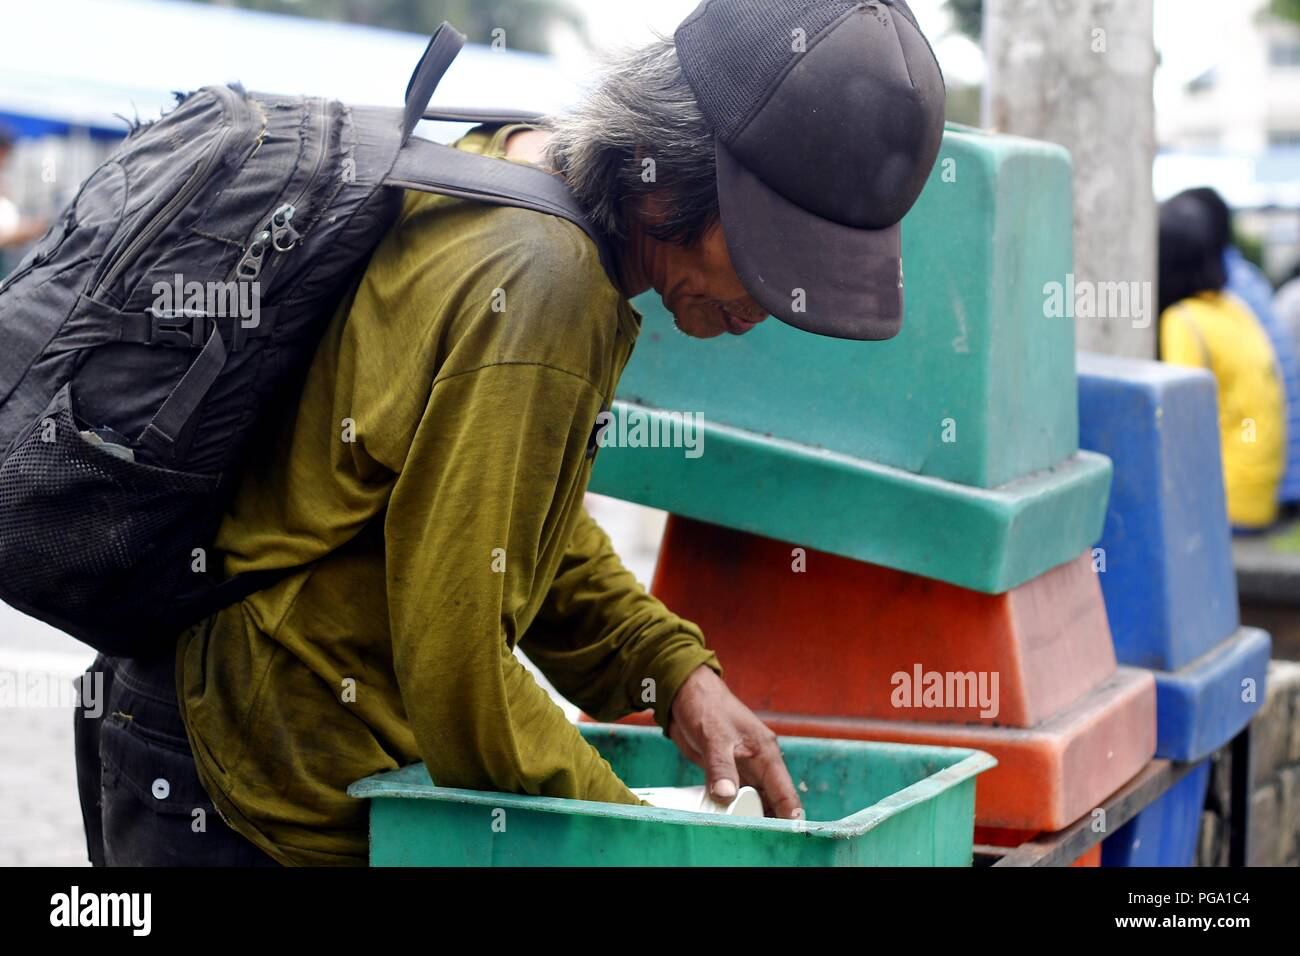 Antipolo City, Philippines - August 18, 2018: A scavenger goes through trash bins to look for recyclable materials. - Stock Image